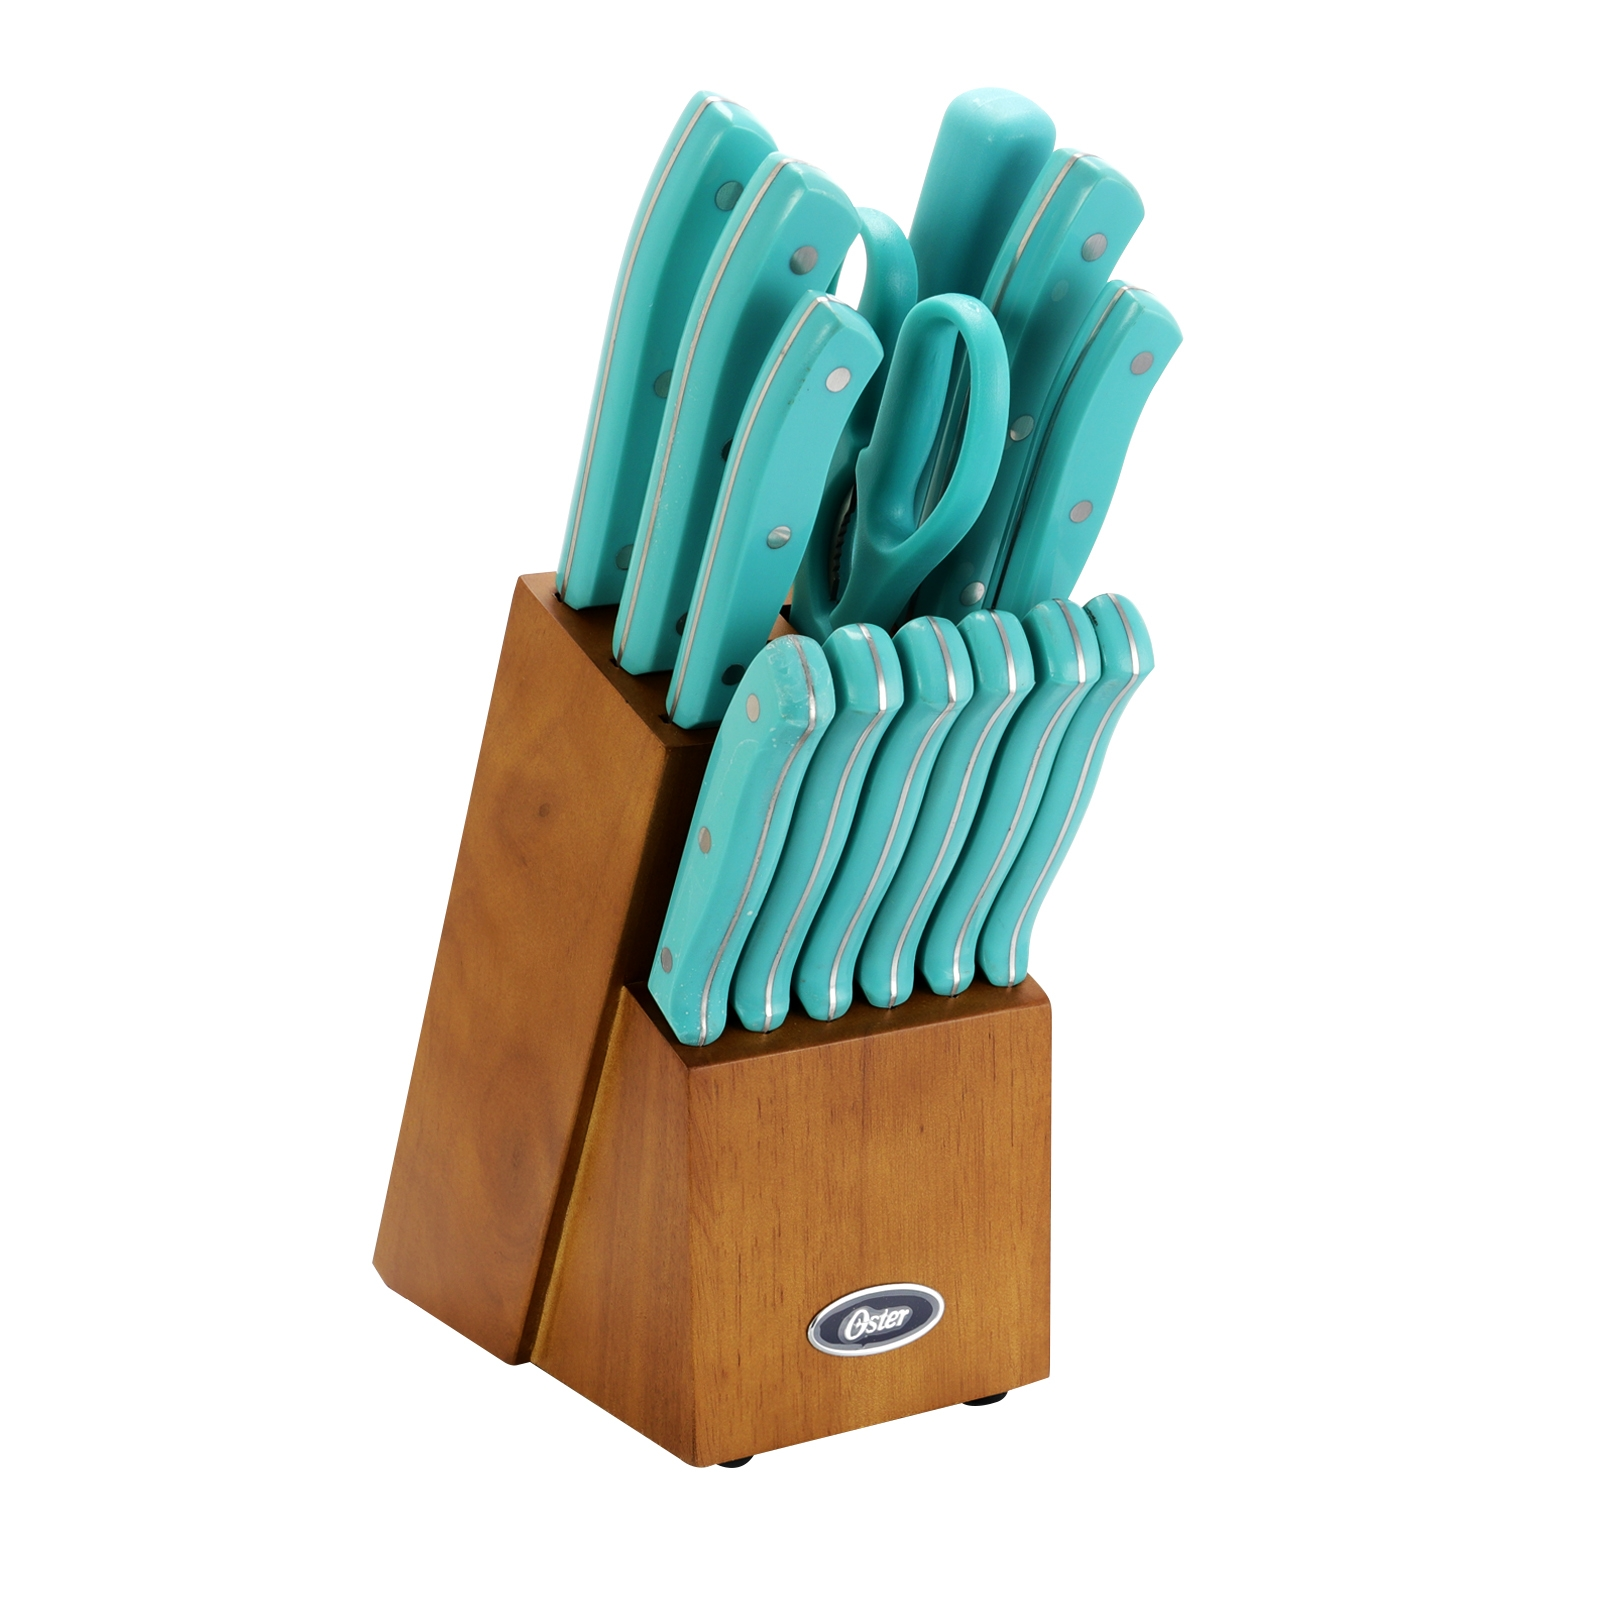 Oster Evansville 14 piece Stainless Steel Cutlery Set with Turquoise Plastic Handle and Black Rubber Wood Block